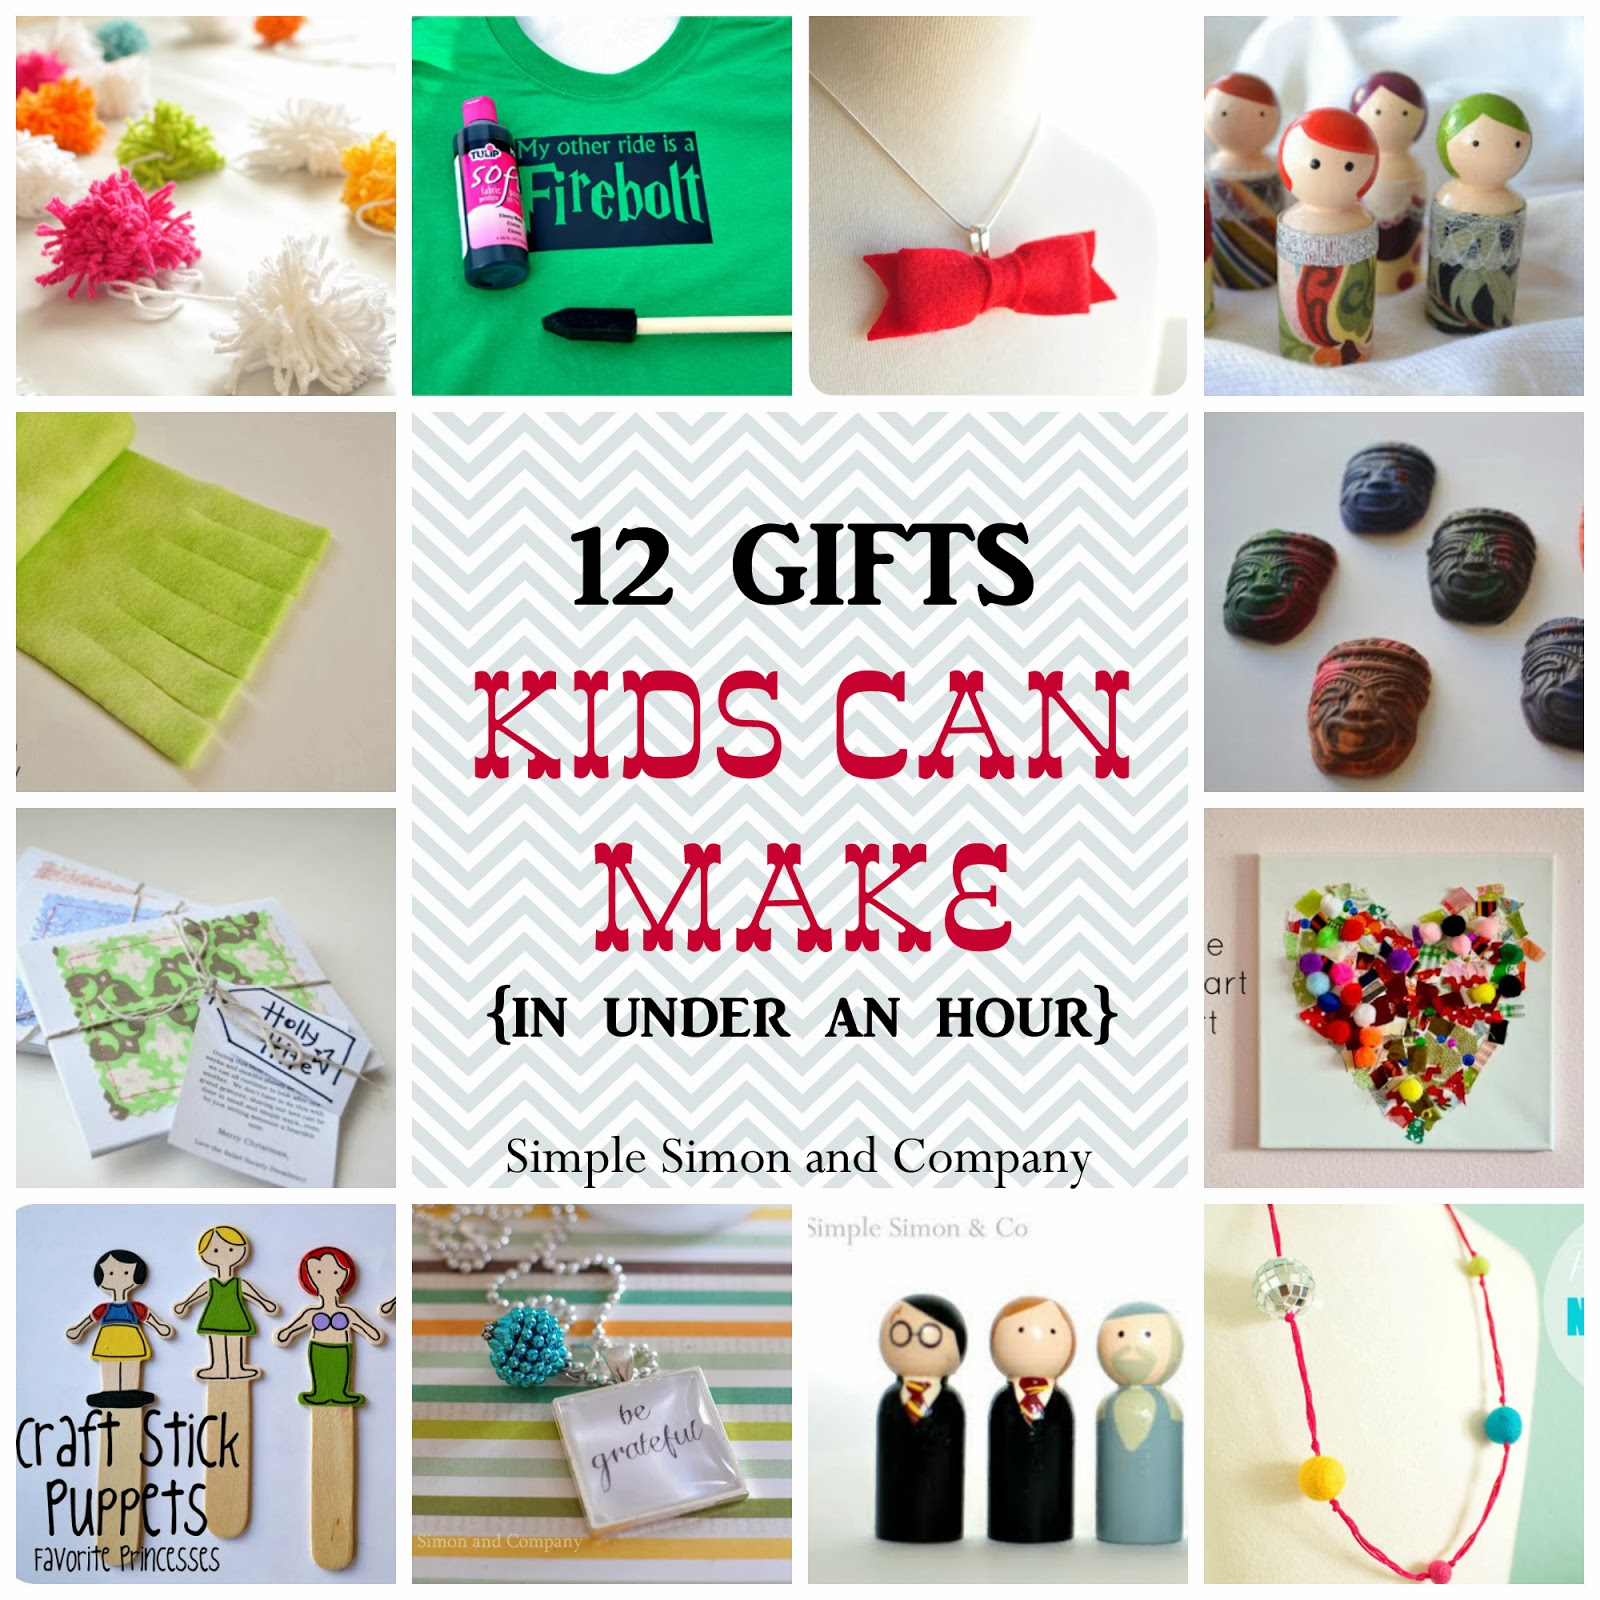 12 gifts kids can make..... - Simple Simon and Company